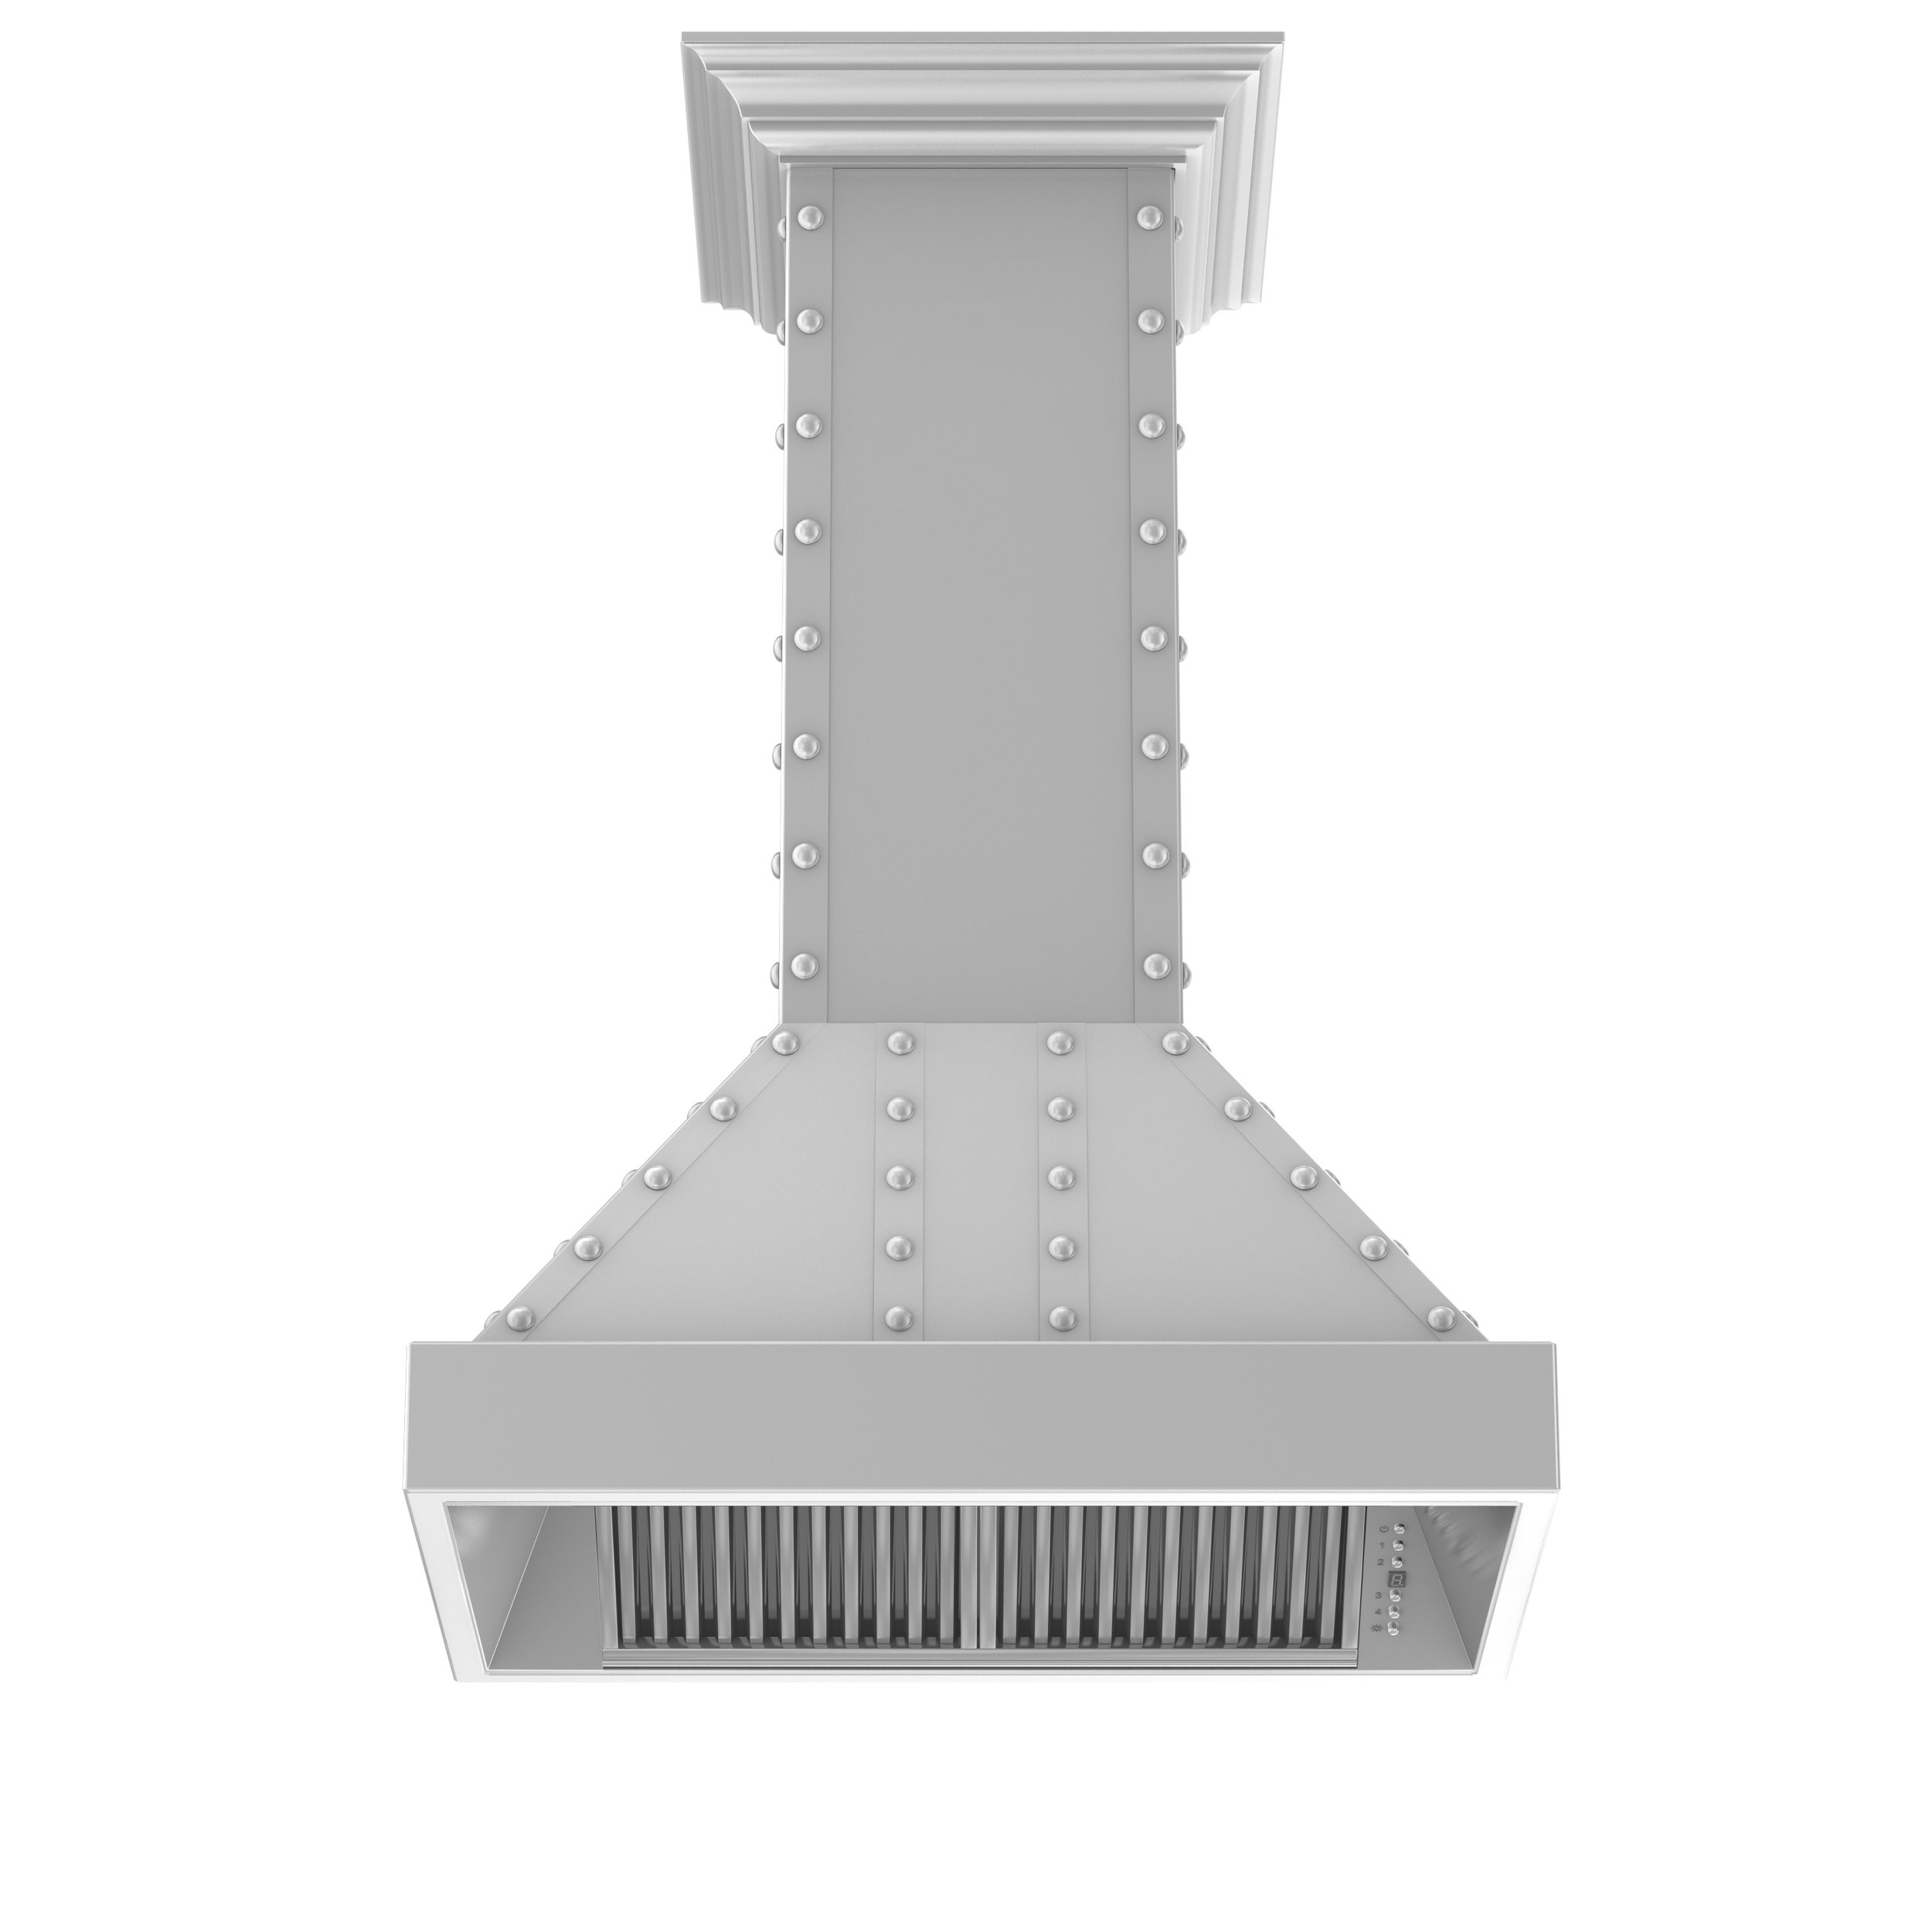 zline-copper-island-mounted-range-hood-655i-4SSSS-under.jpg